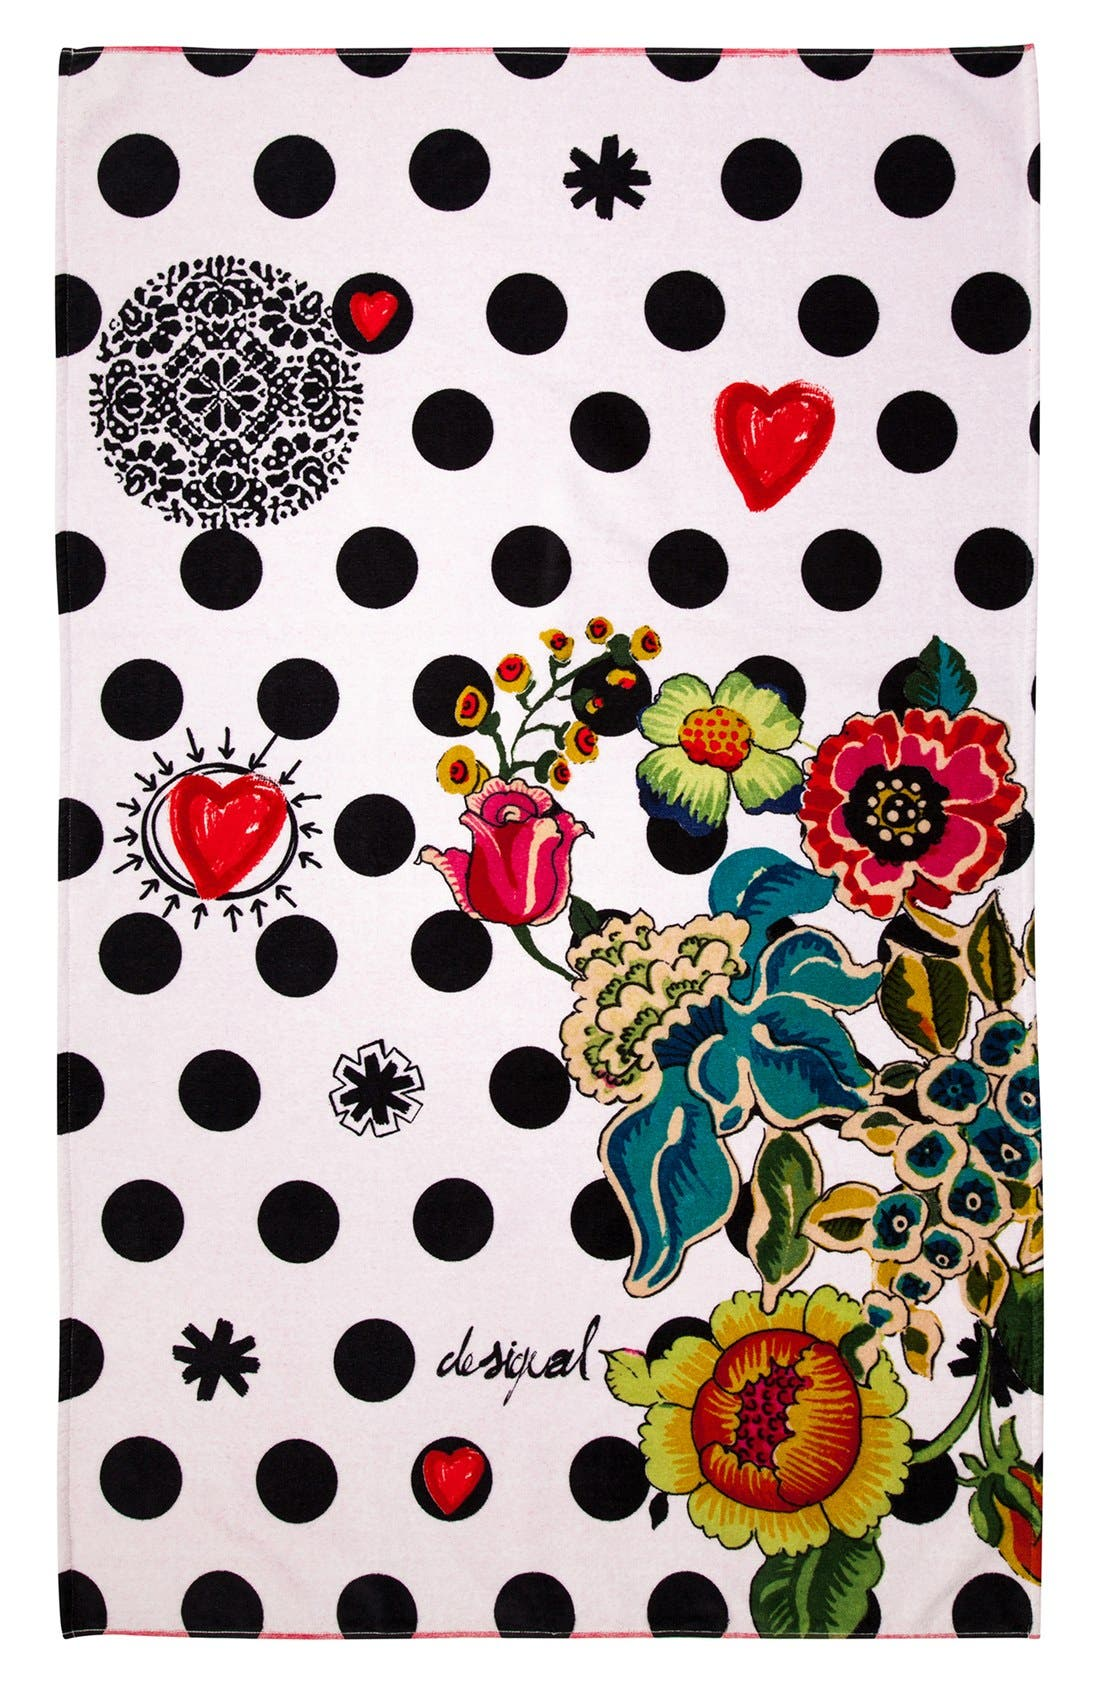 DESIGUAL 'Polka Dots' Bath Towel, Main, color, 100